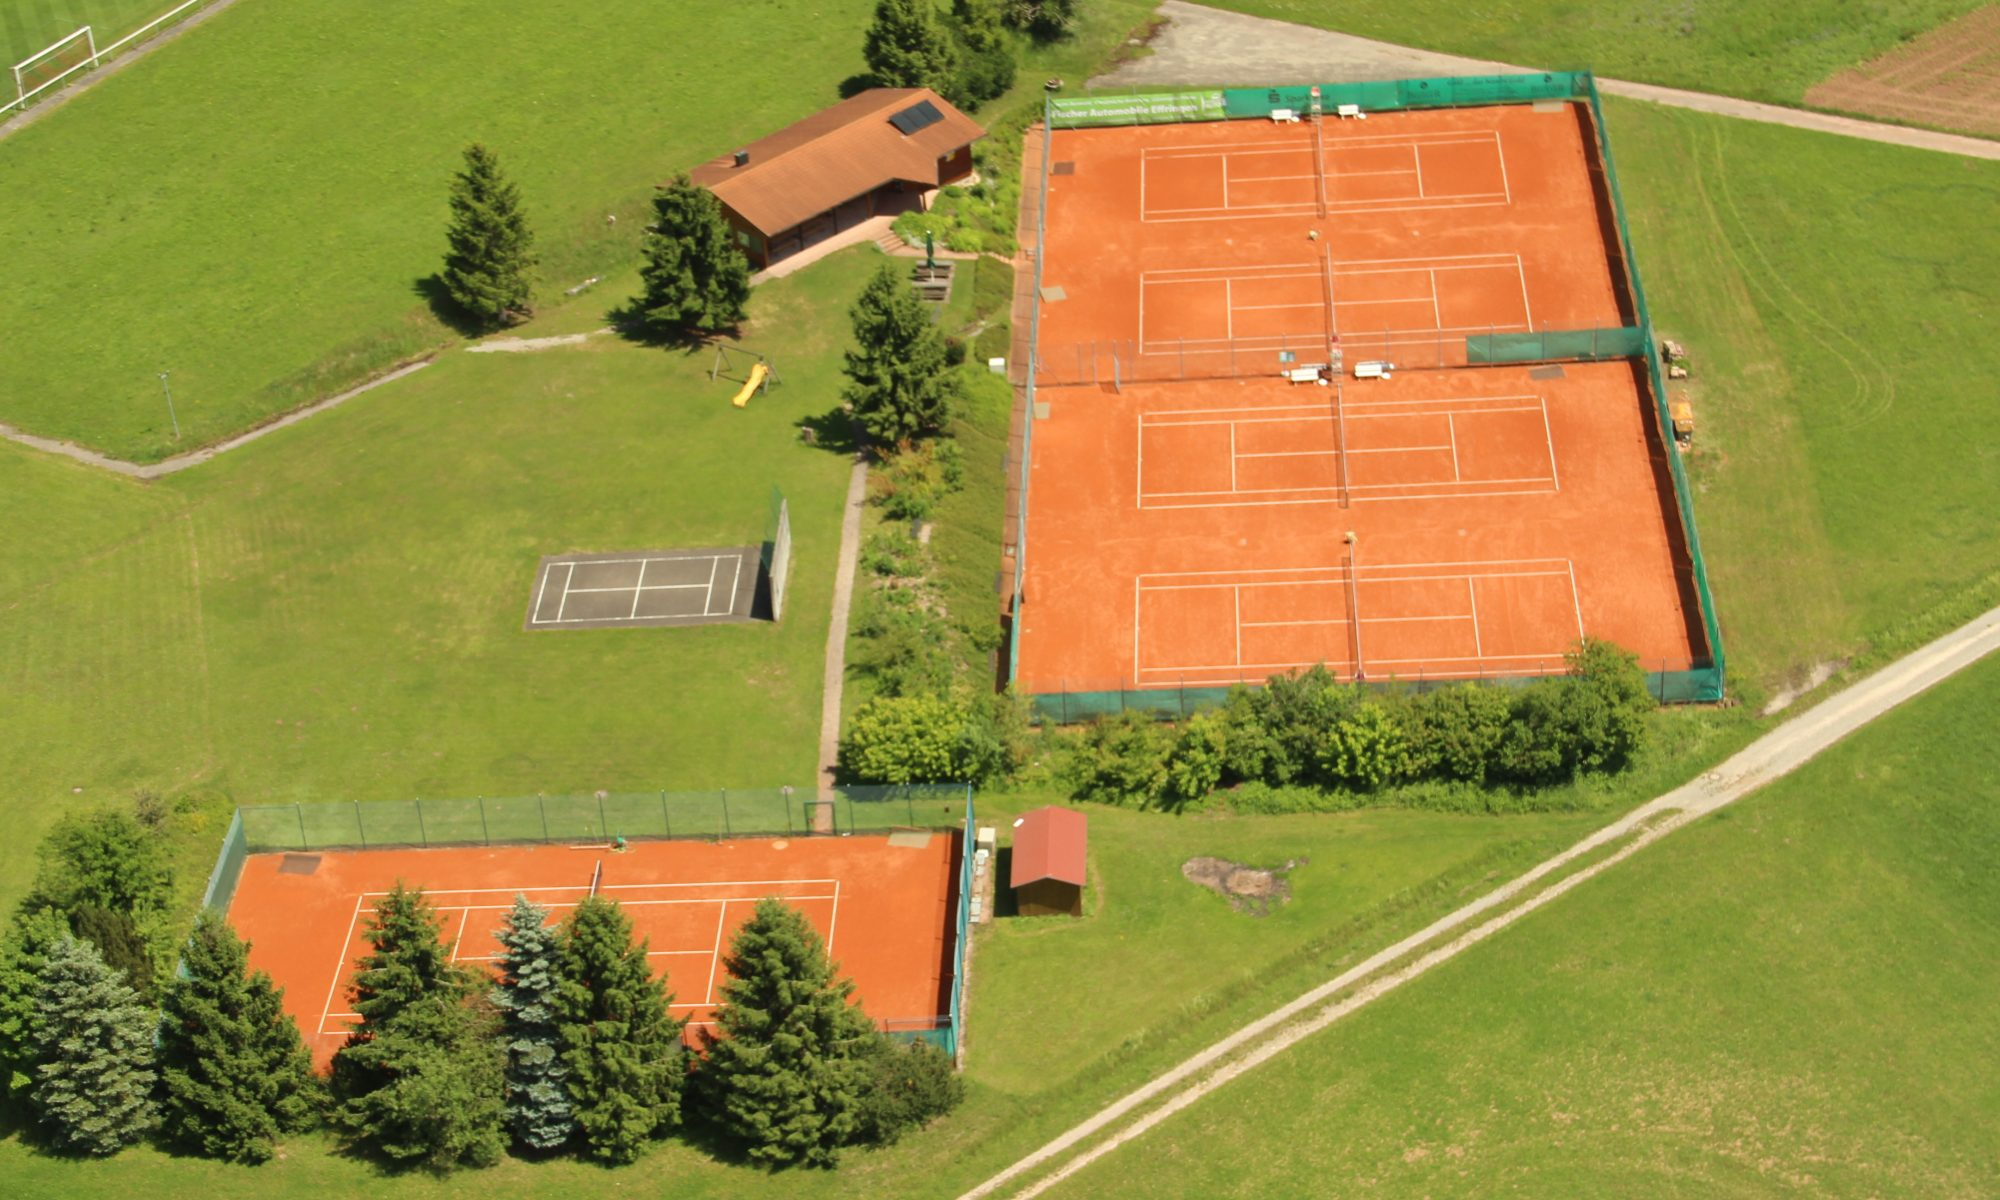 TENNISCLUB WILDBERG